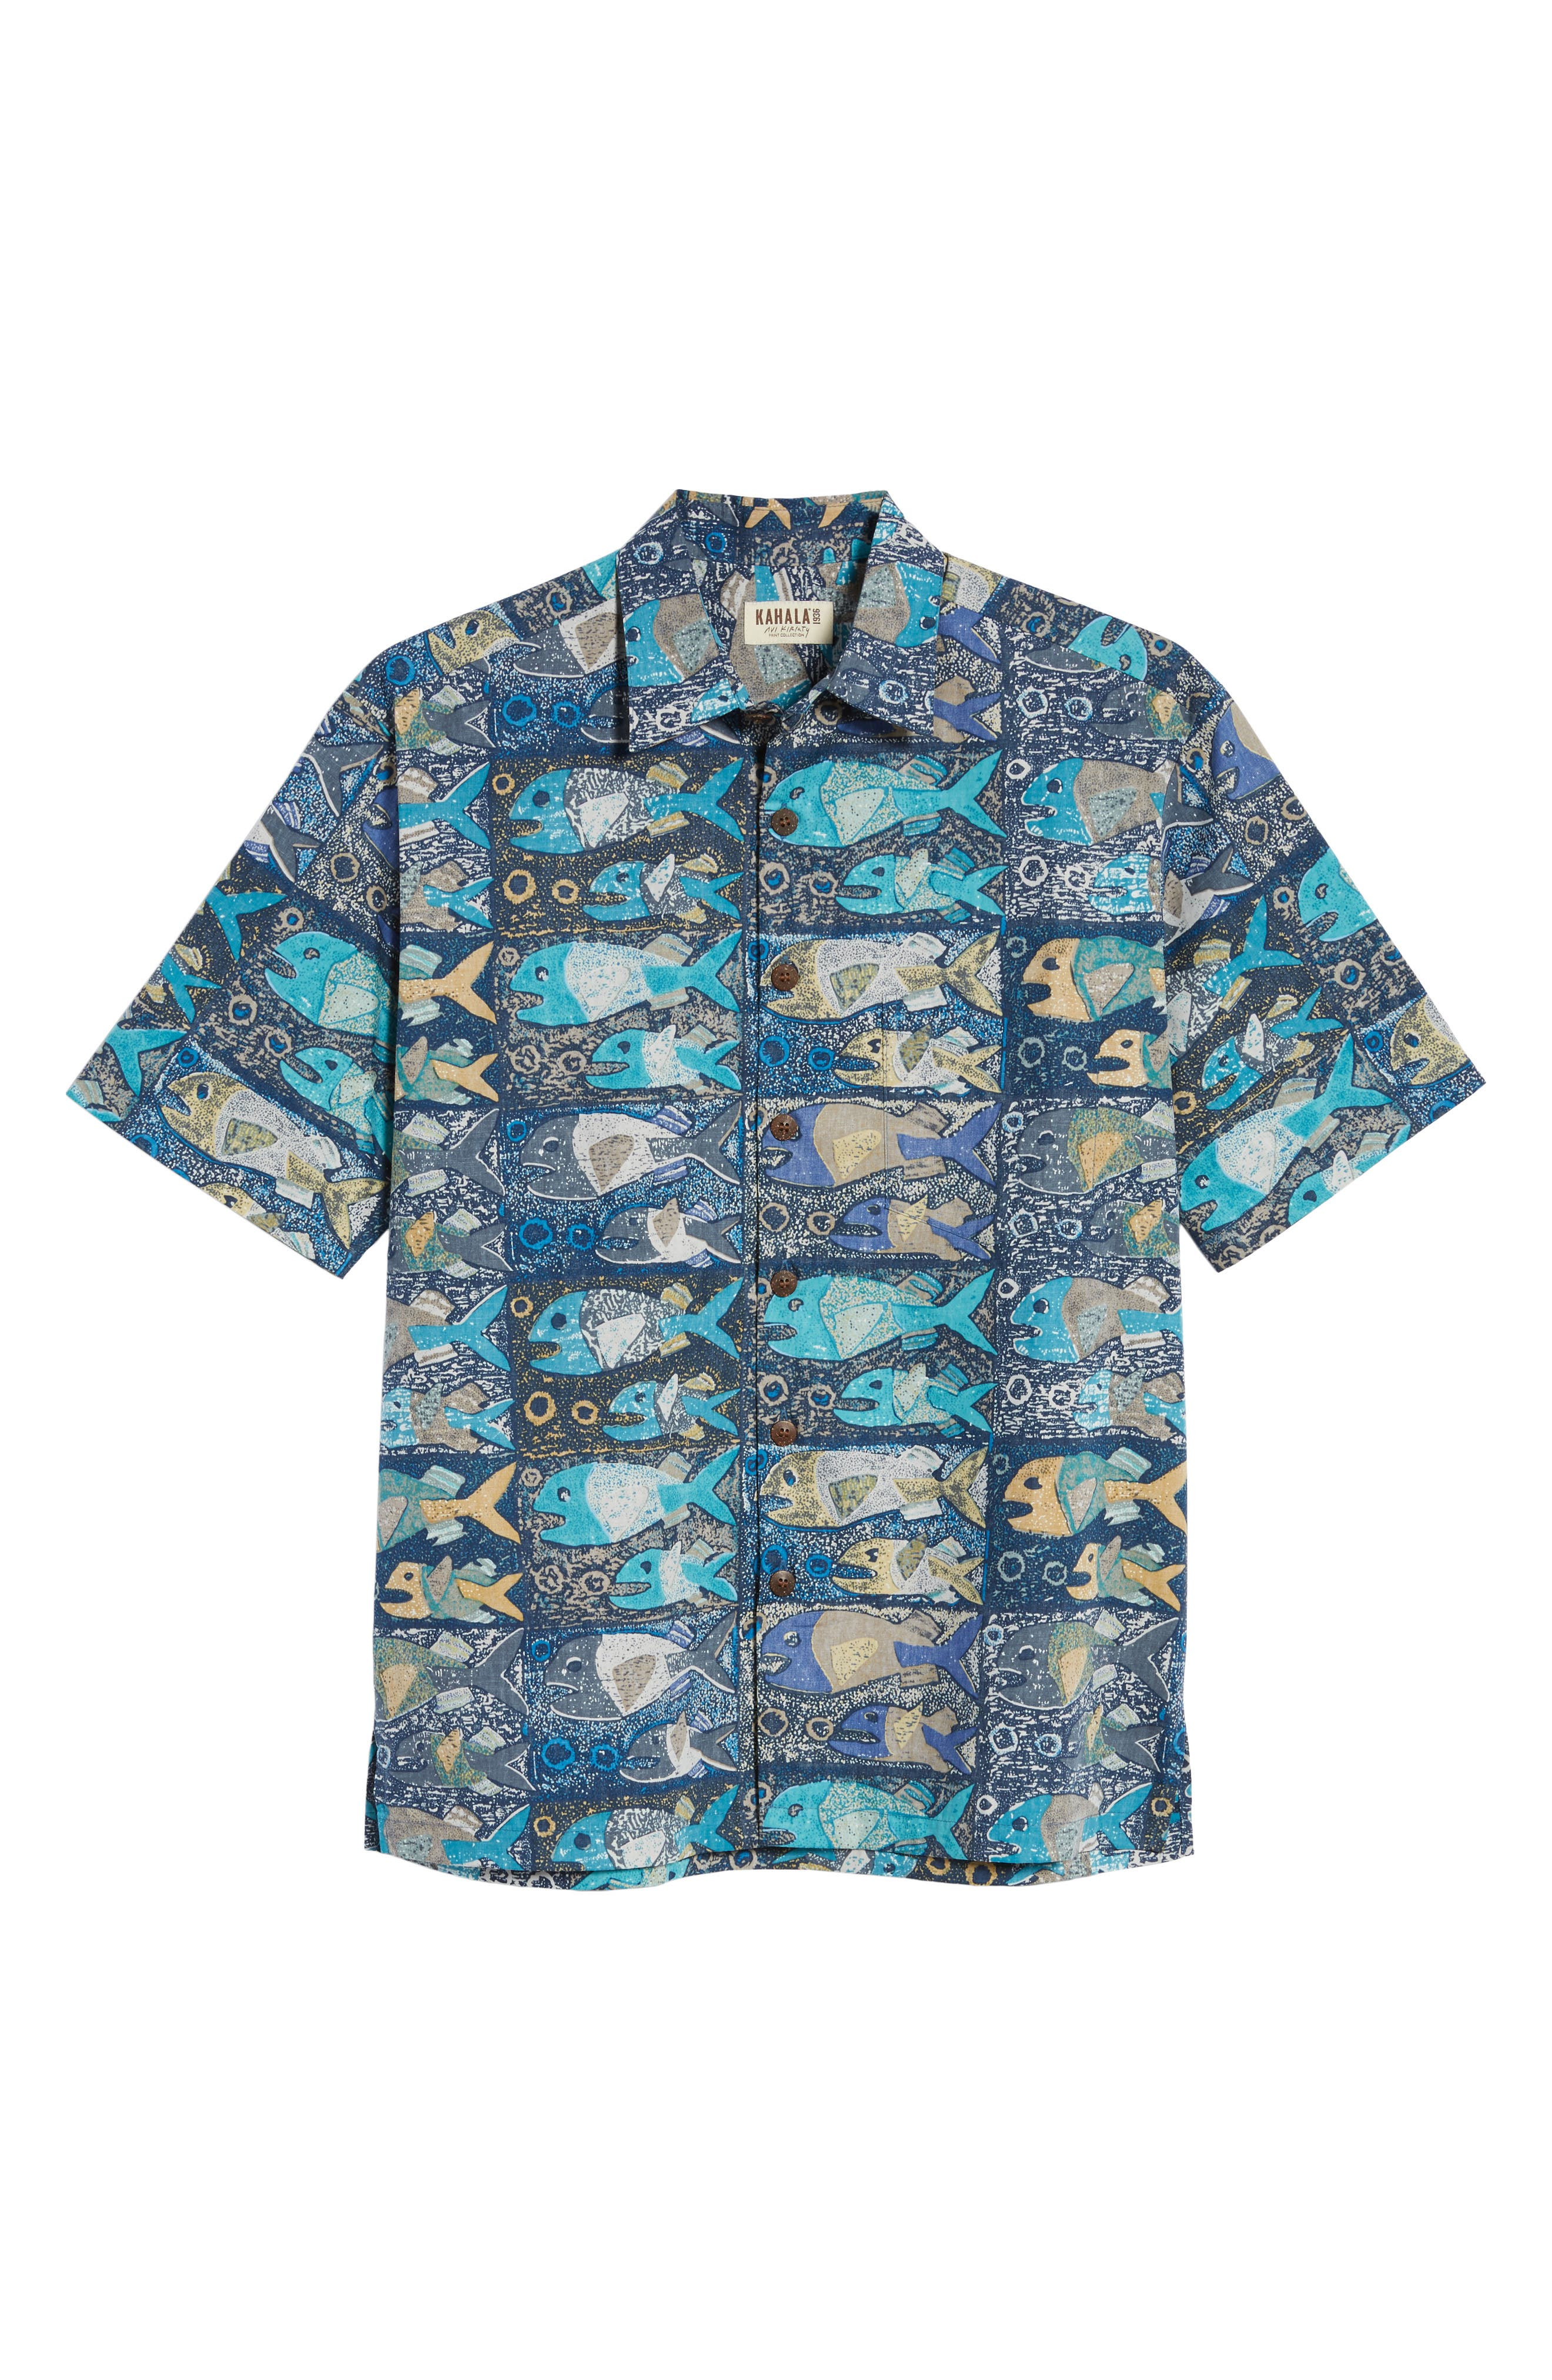 Stone Fish Print Sport Shirt,                             Alternate thumbnail 6, color,                             Navy